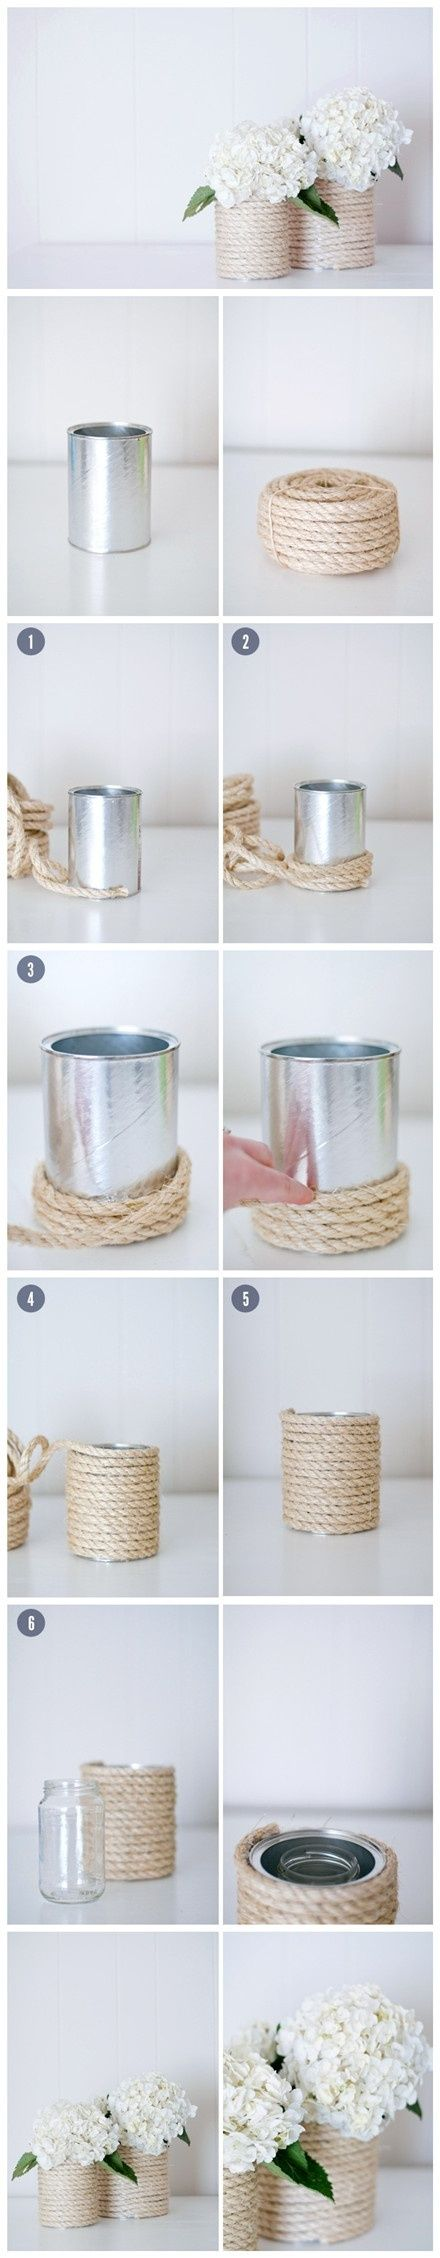 Need this for a the toothbrush and flosser and toothpaste holder.   Tin Can Rope DIY Vases #craft #vase #flowers